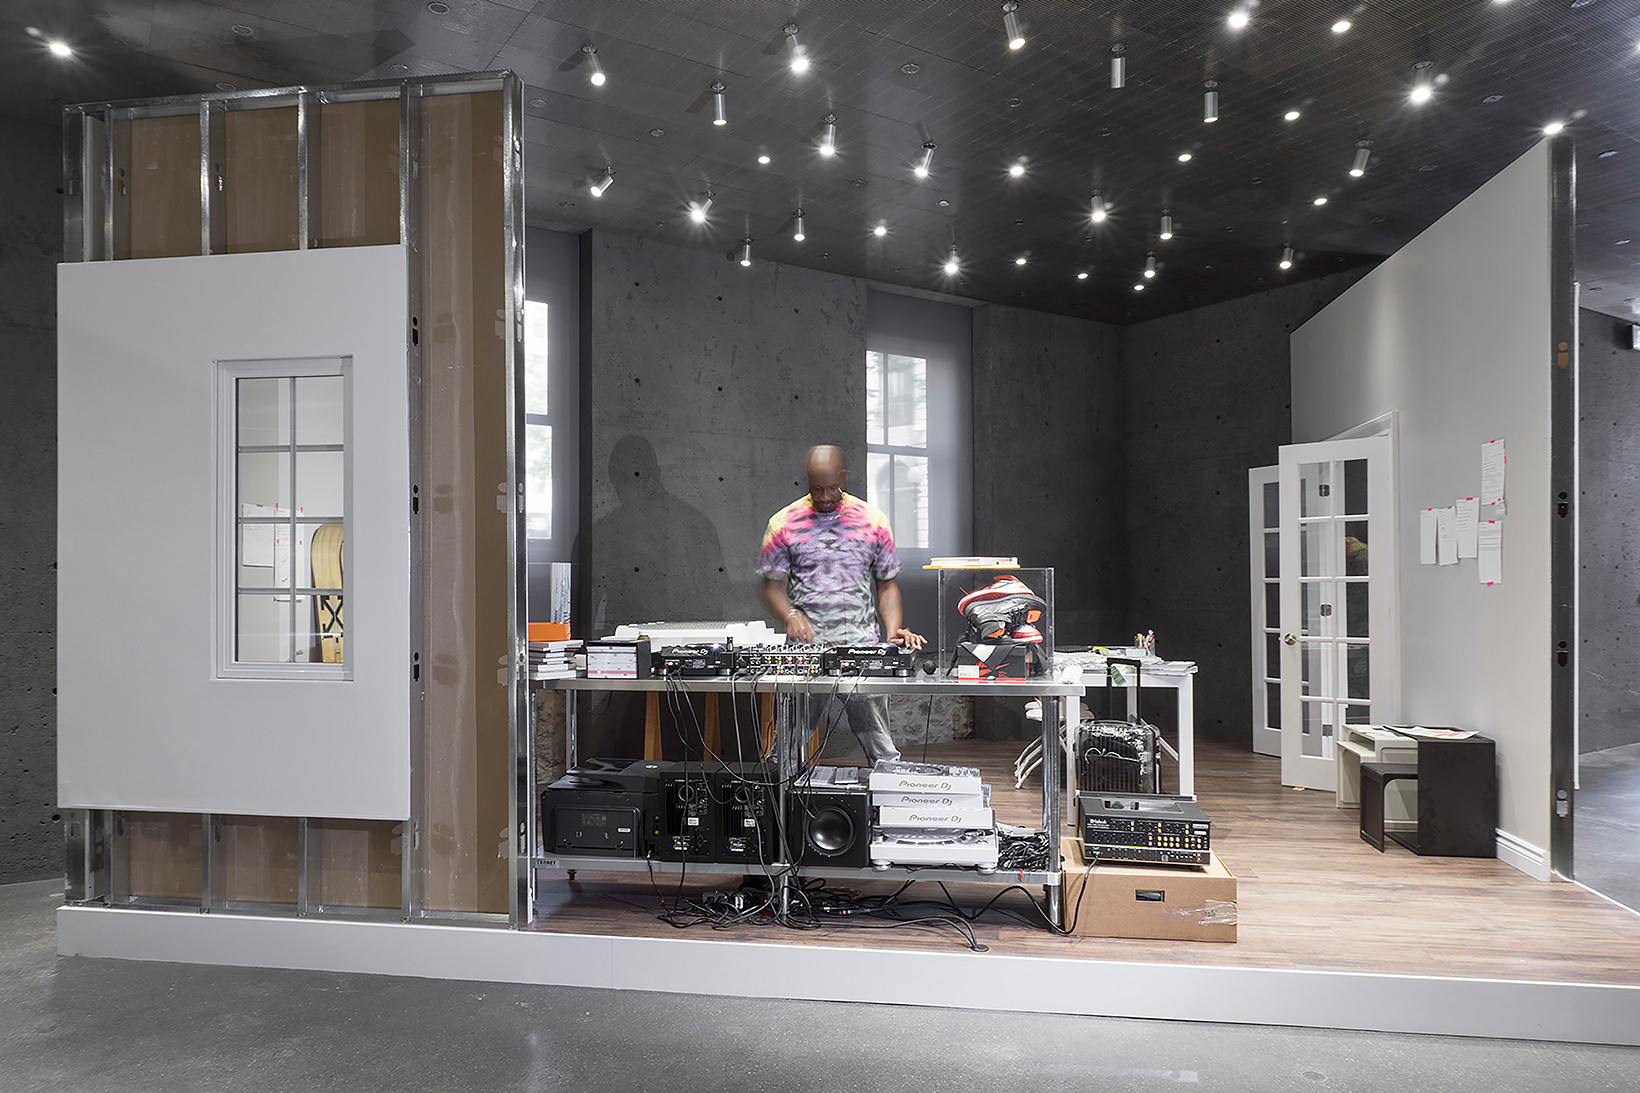 """Virgil Abloh and SSENSE Team up for """"CUTTING ROOM FLOOR"""" Exhibit"""